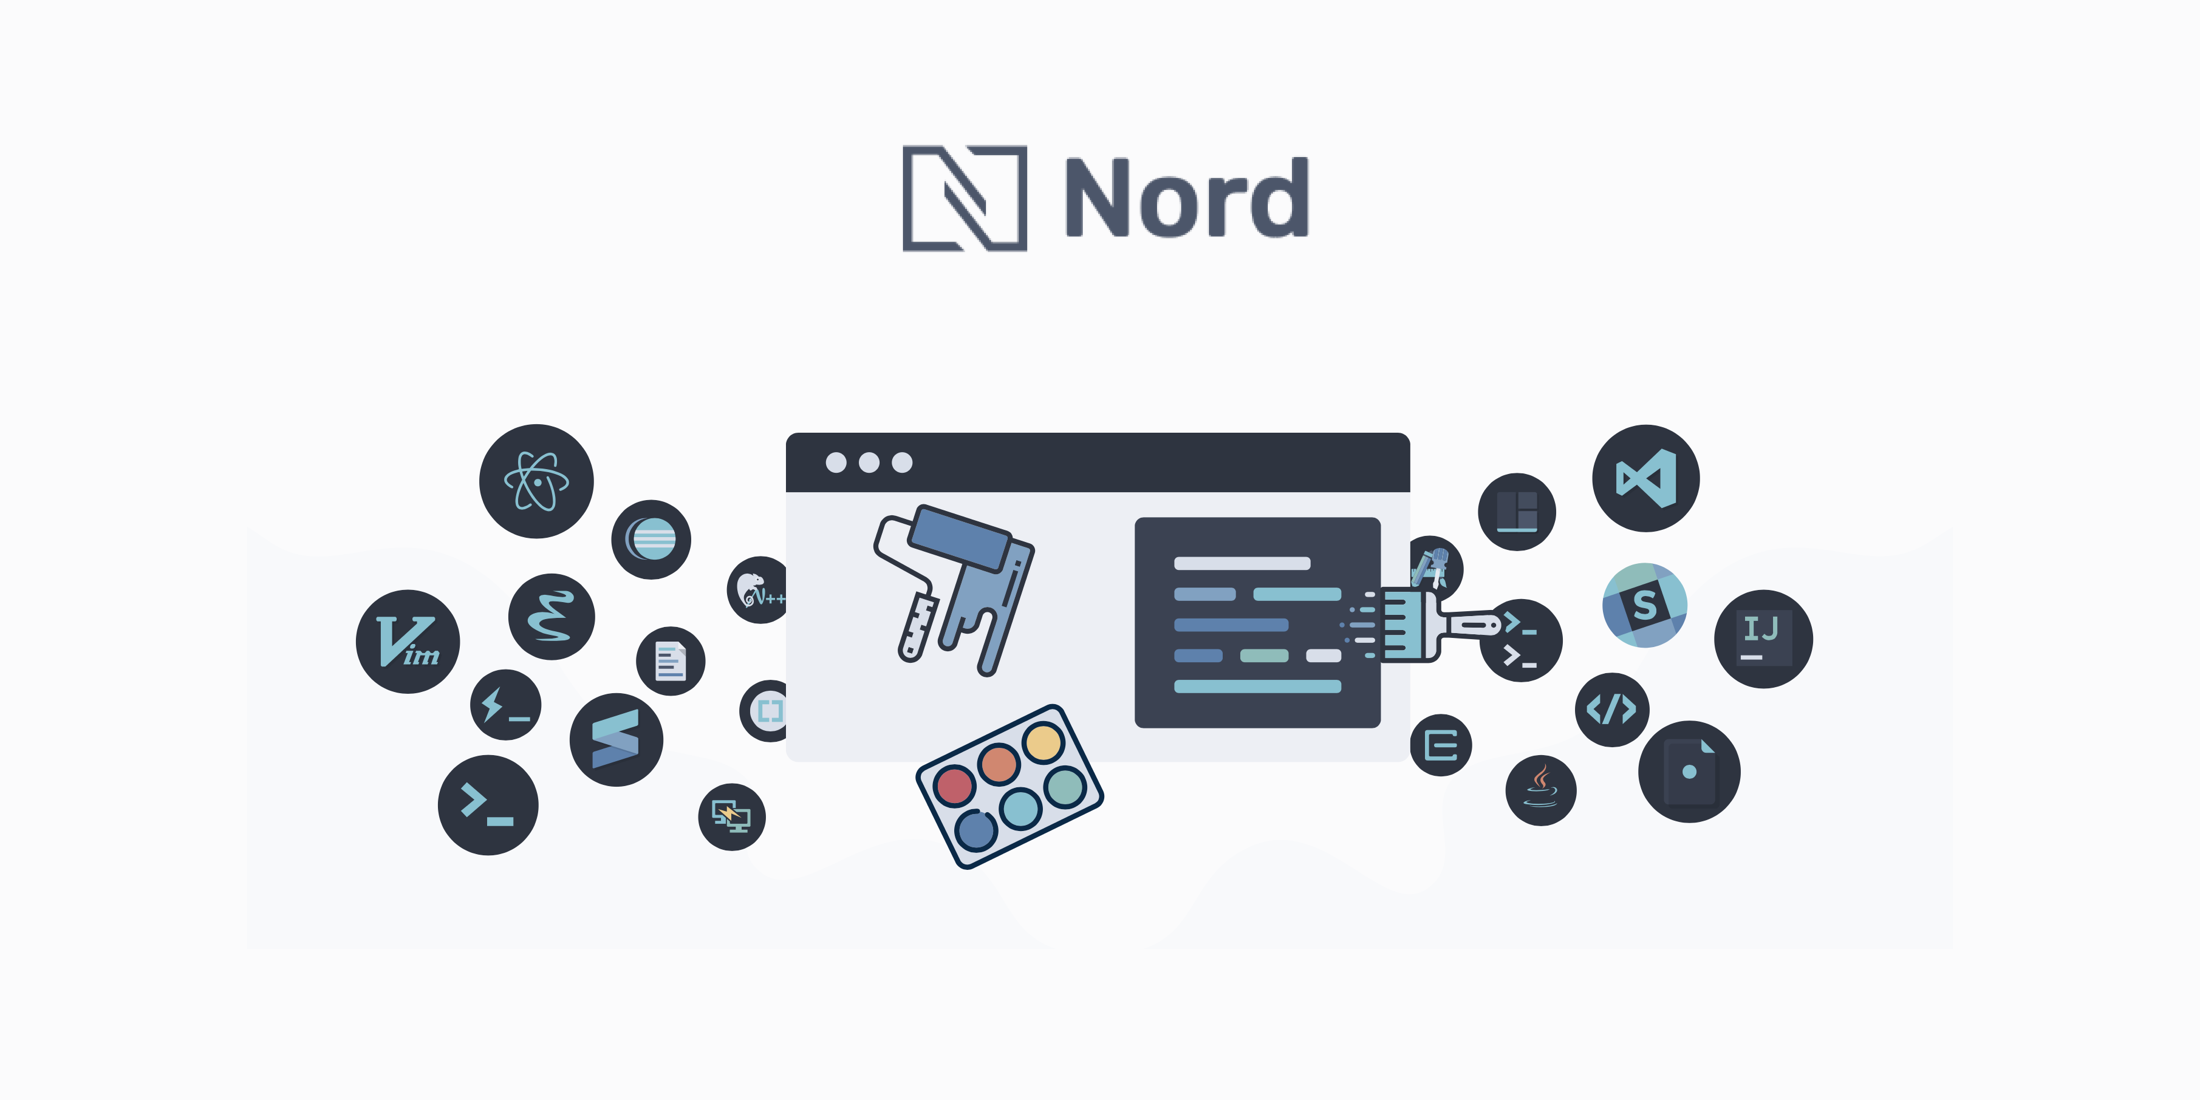 Nord – An arctic, north-bluish color palette